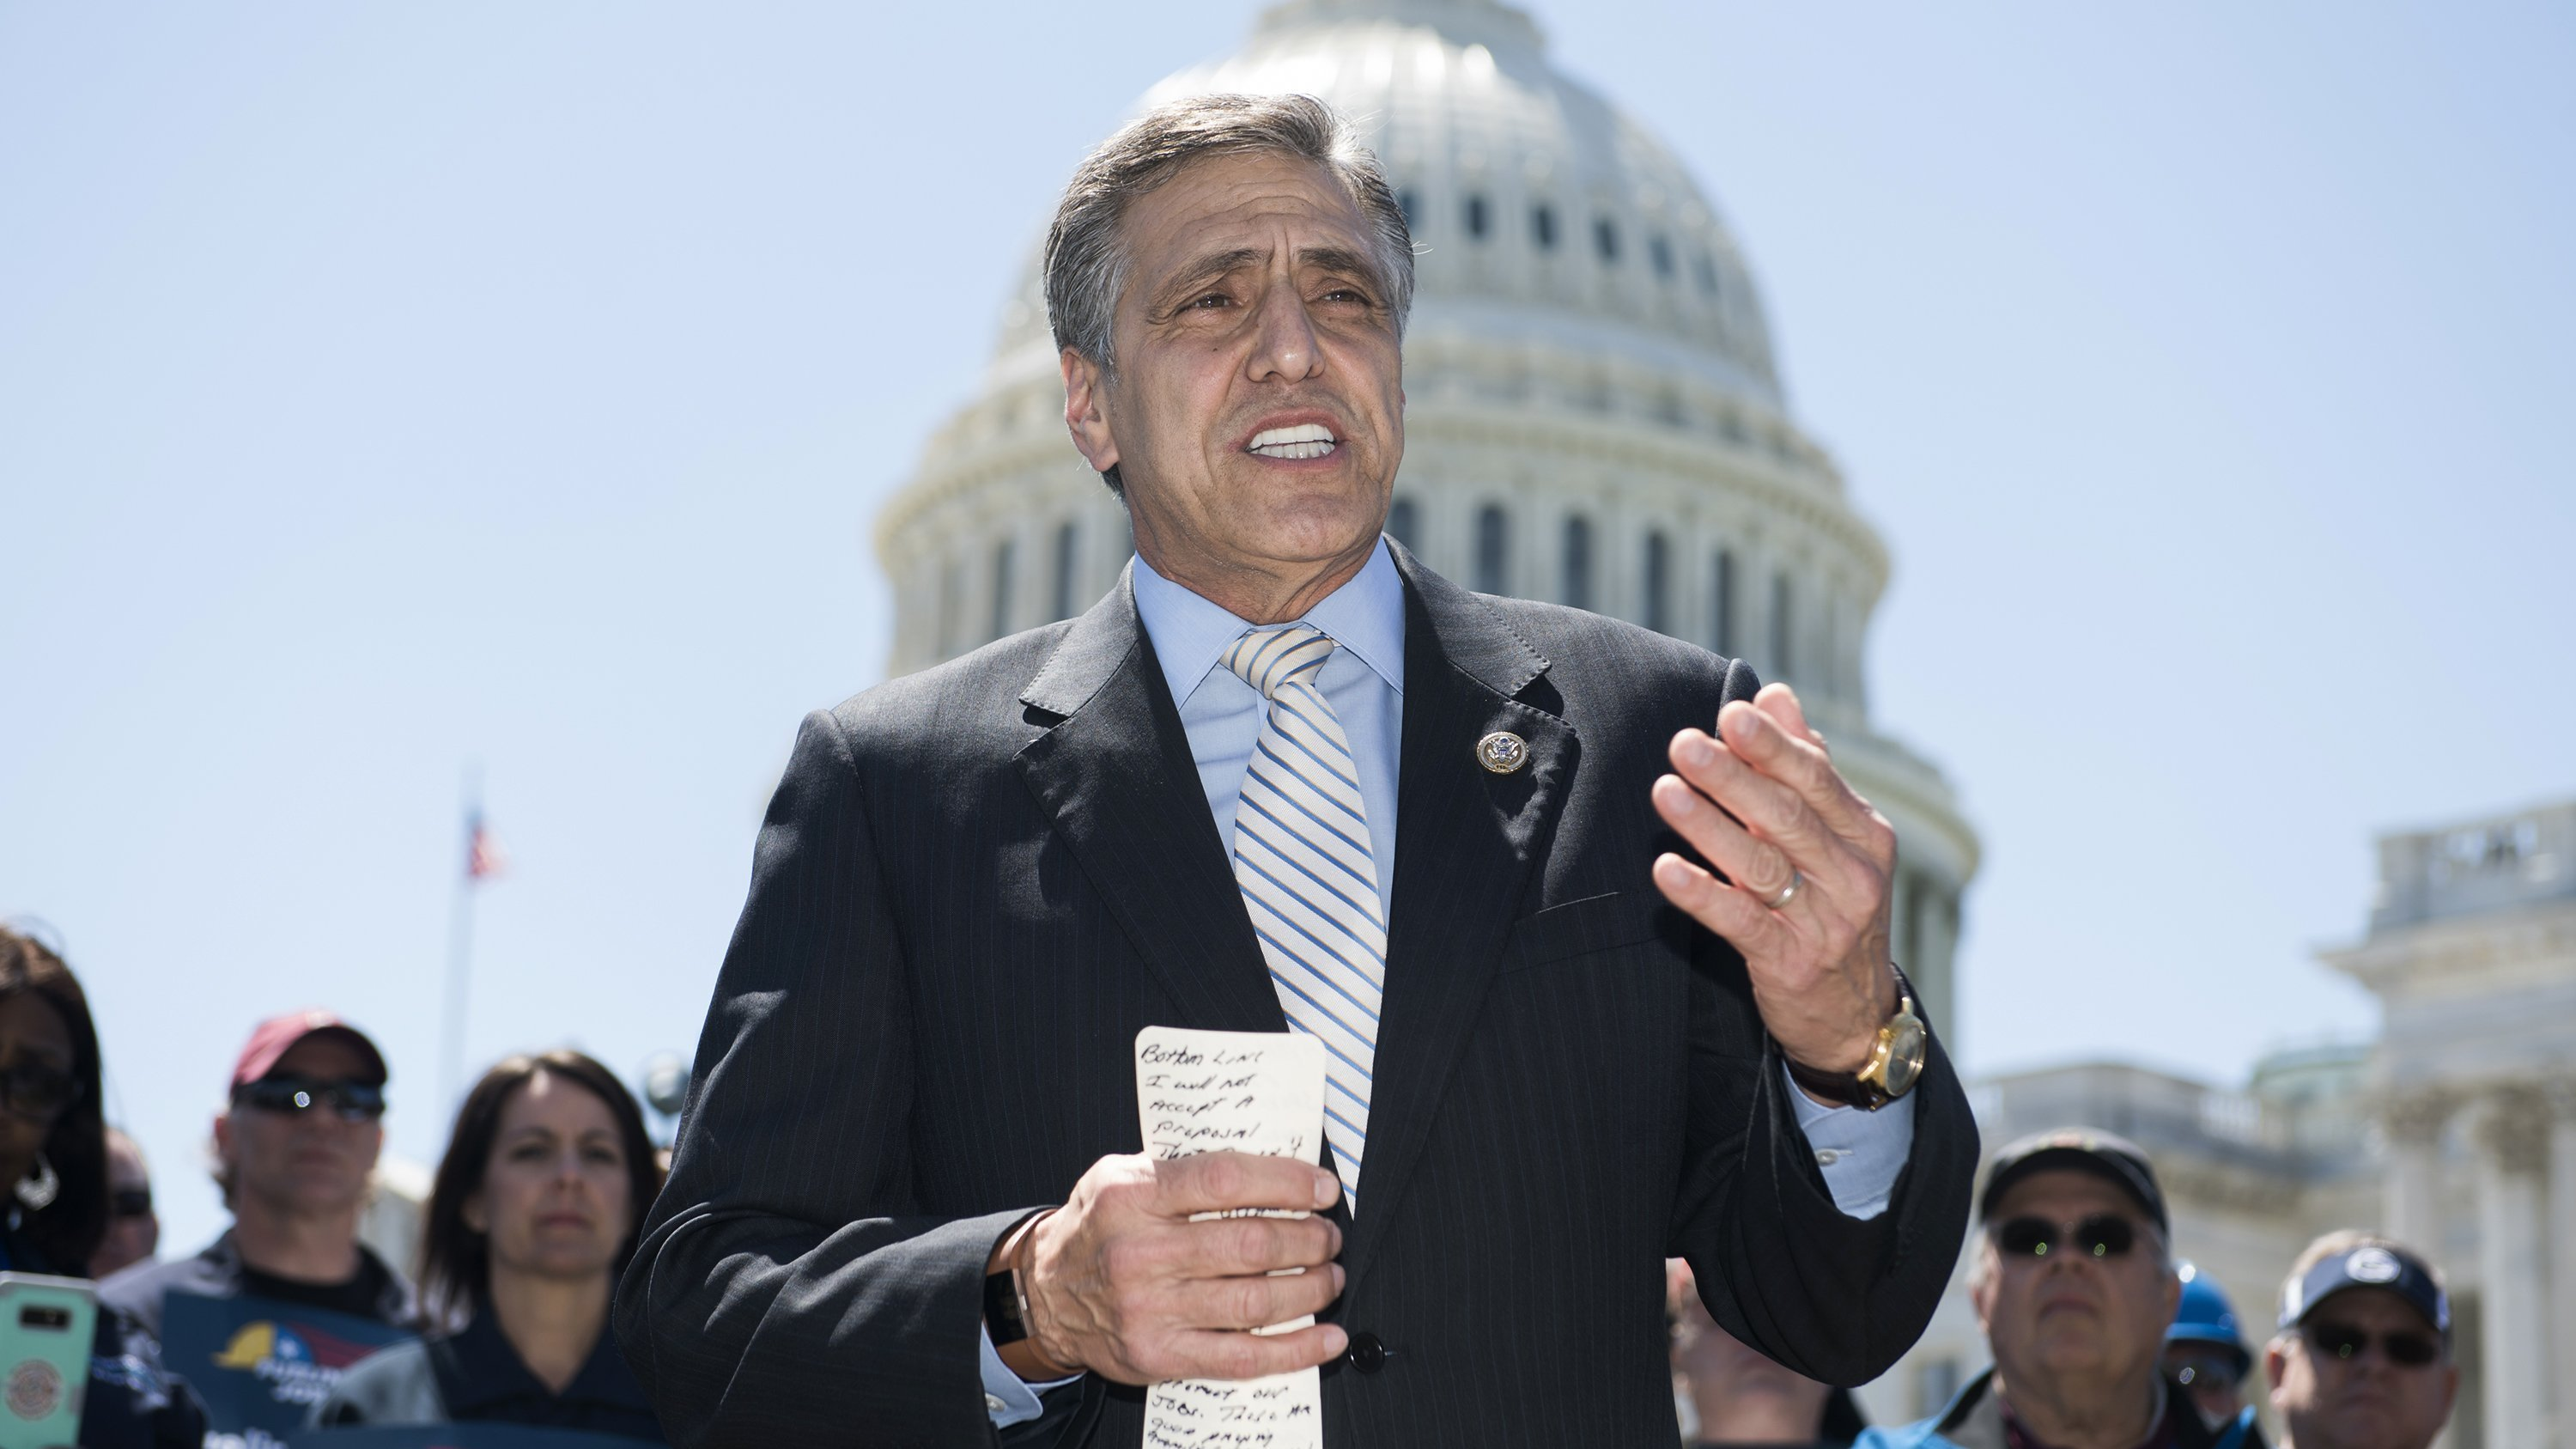 Trump records robo-call endorsement for Lou Barletta in Pa. Senate race